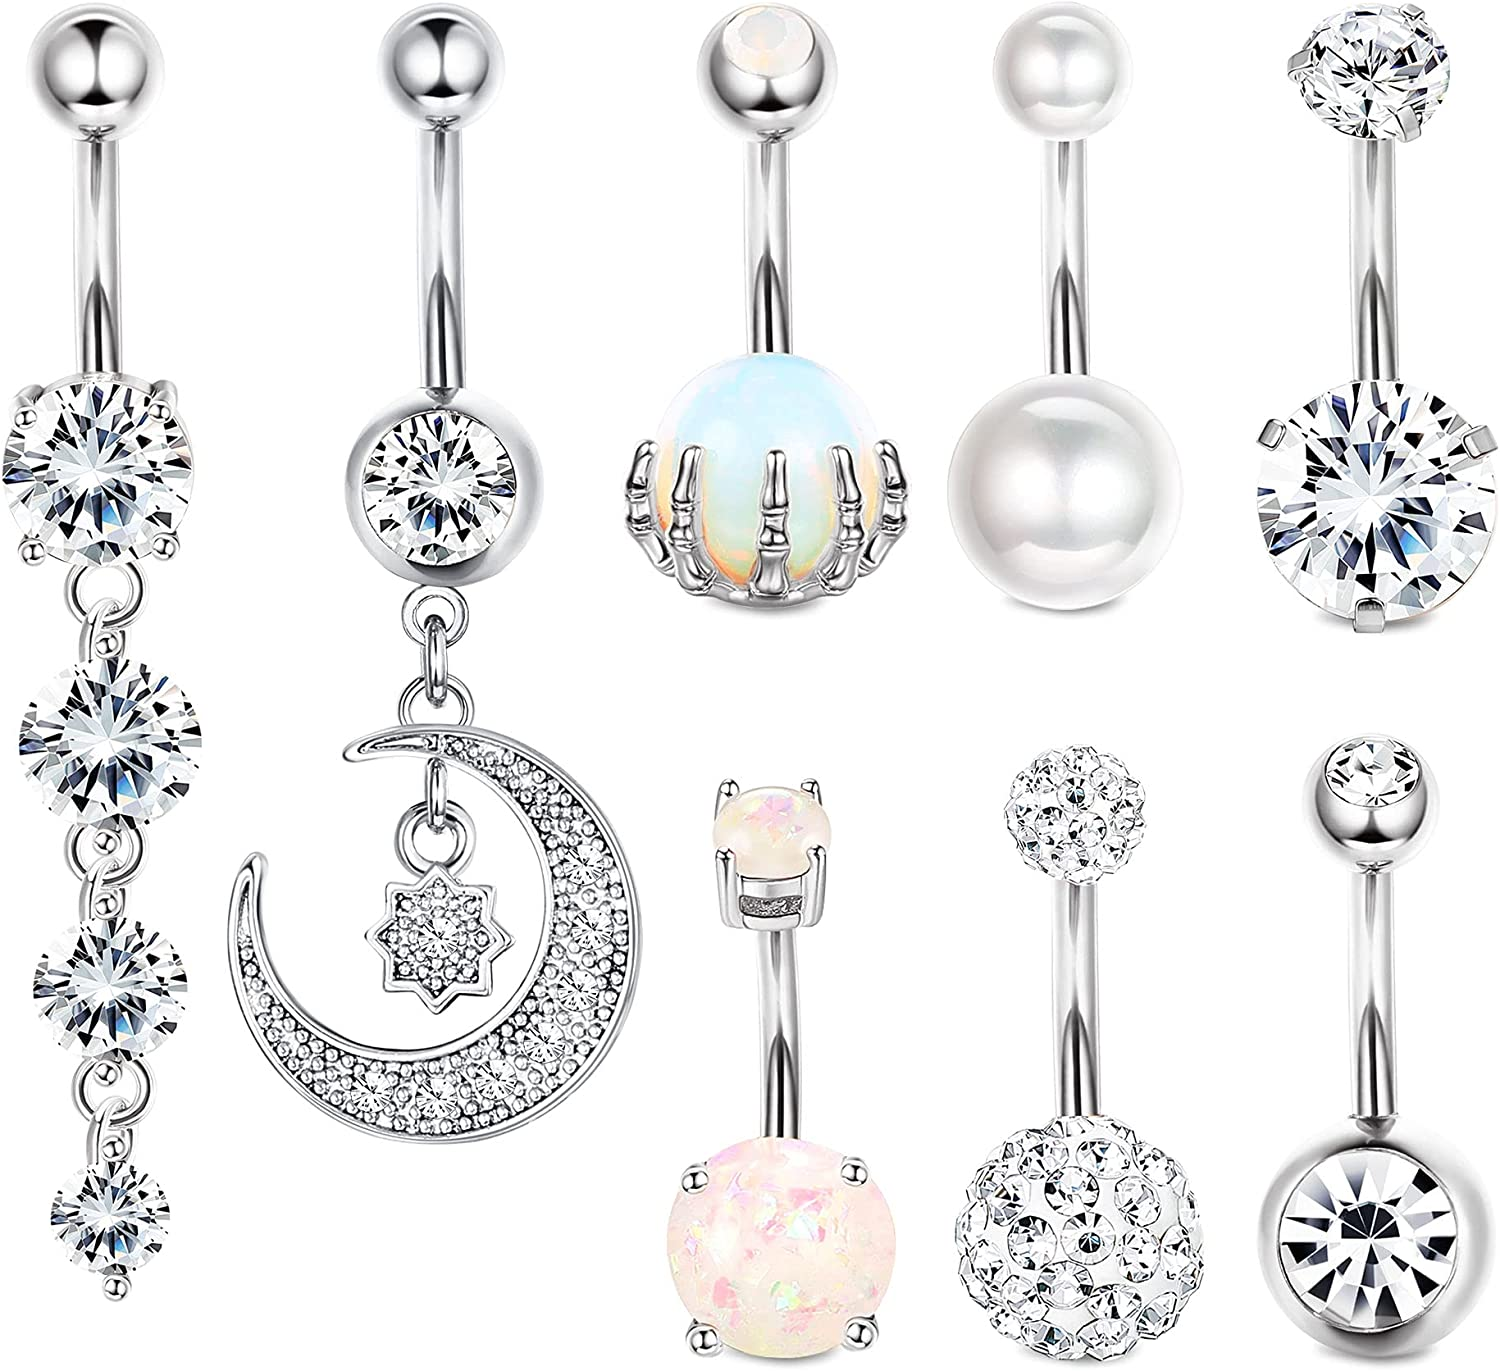 BodyBonita 8PCS 14G Stainless Steel Belly Button Rings for Women CZ Dangle Navel Rings Opal Belly Piercing Barbell Body Piercing Jewelry